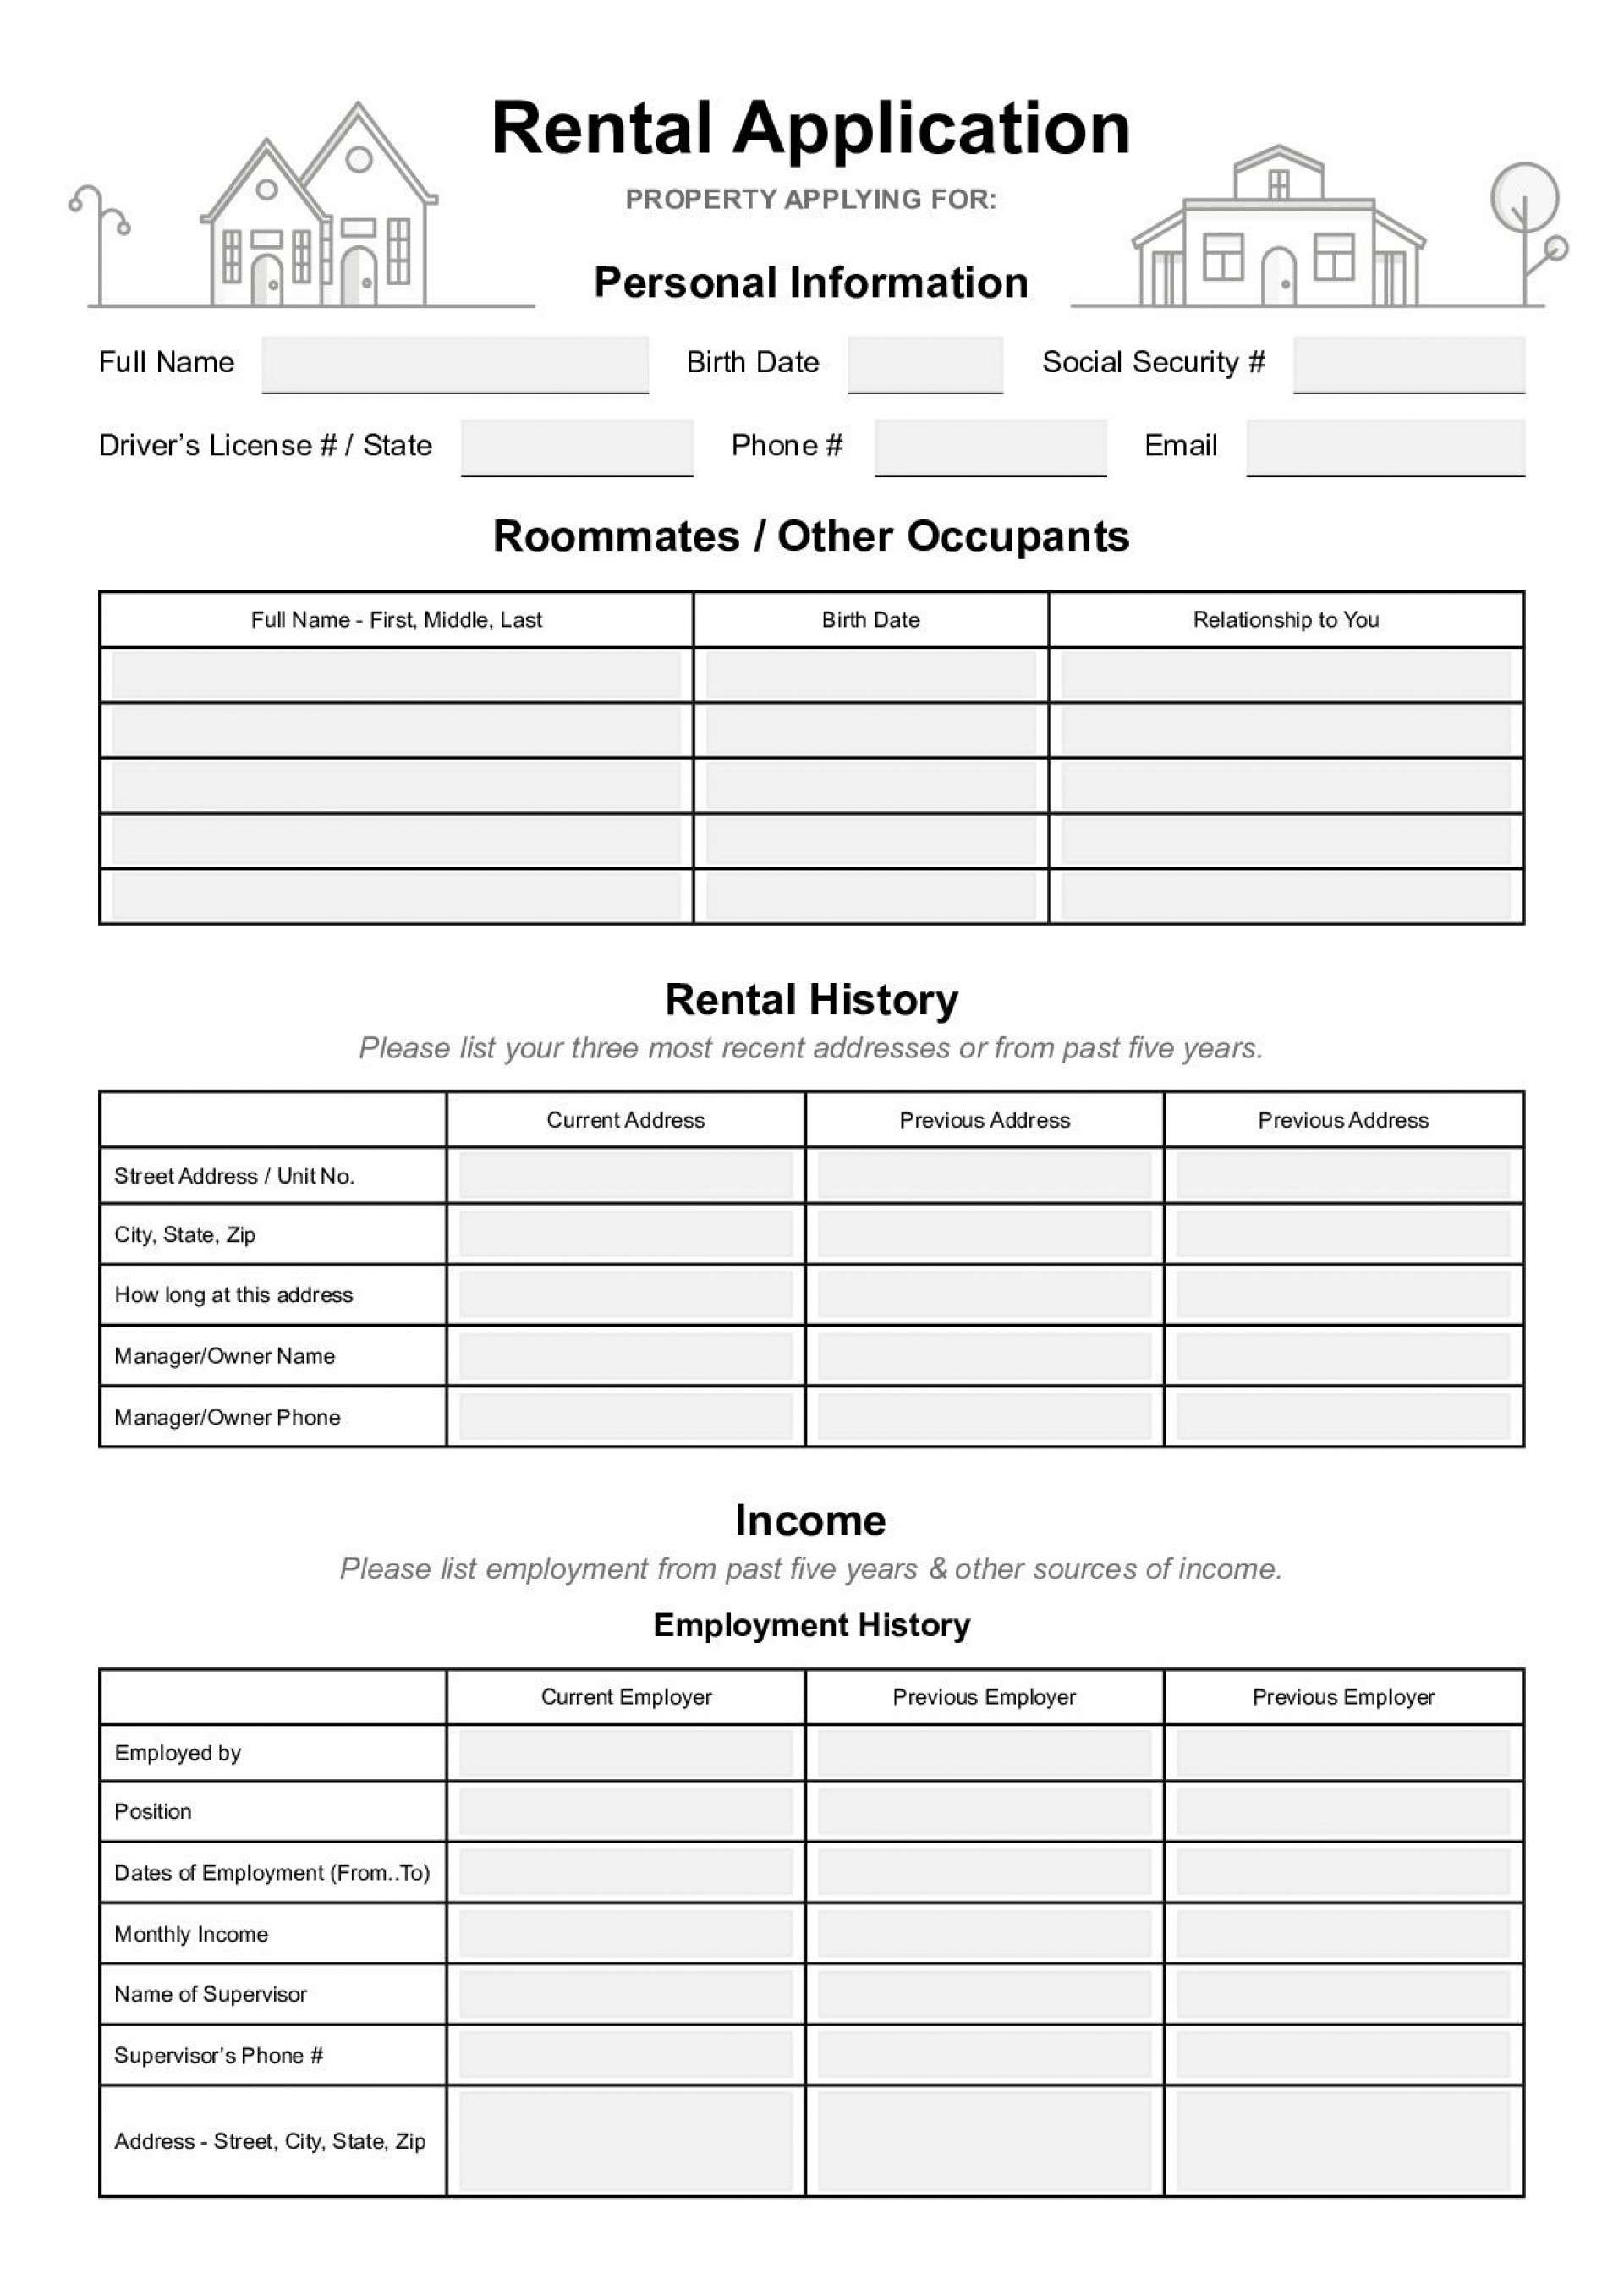 000 Phenomenal Free Rental Application Template Idea  Form Oregon Credit Online1920